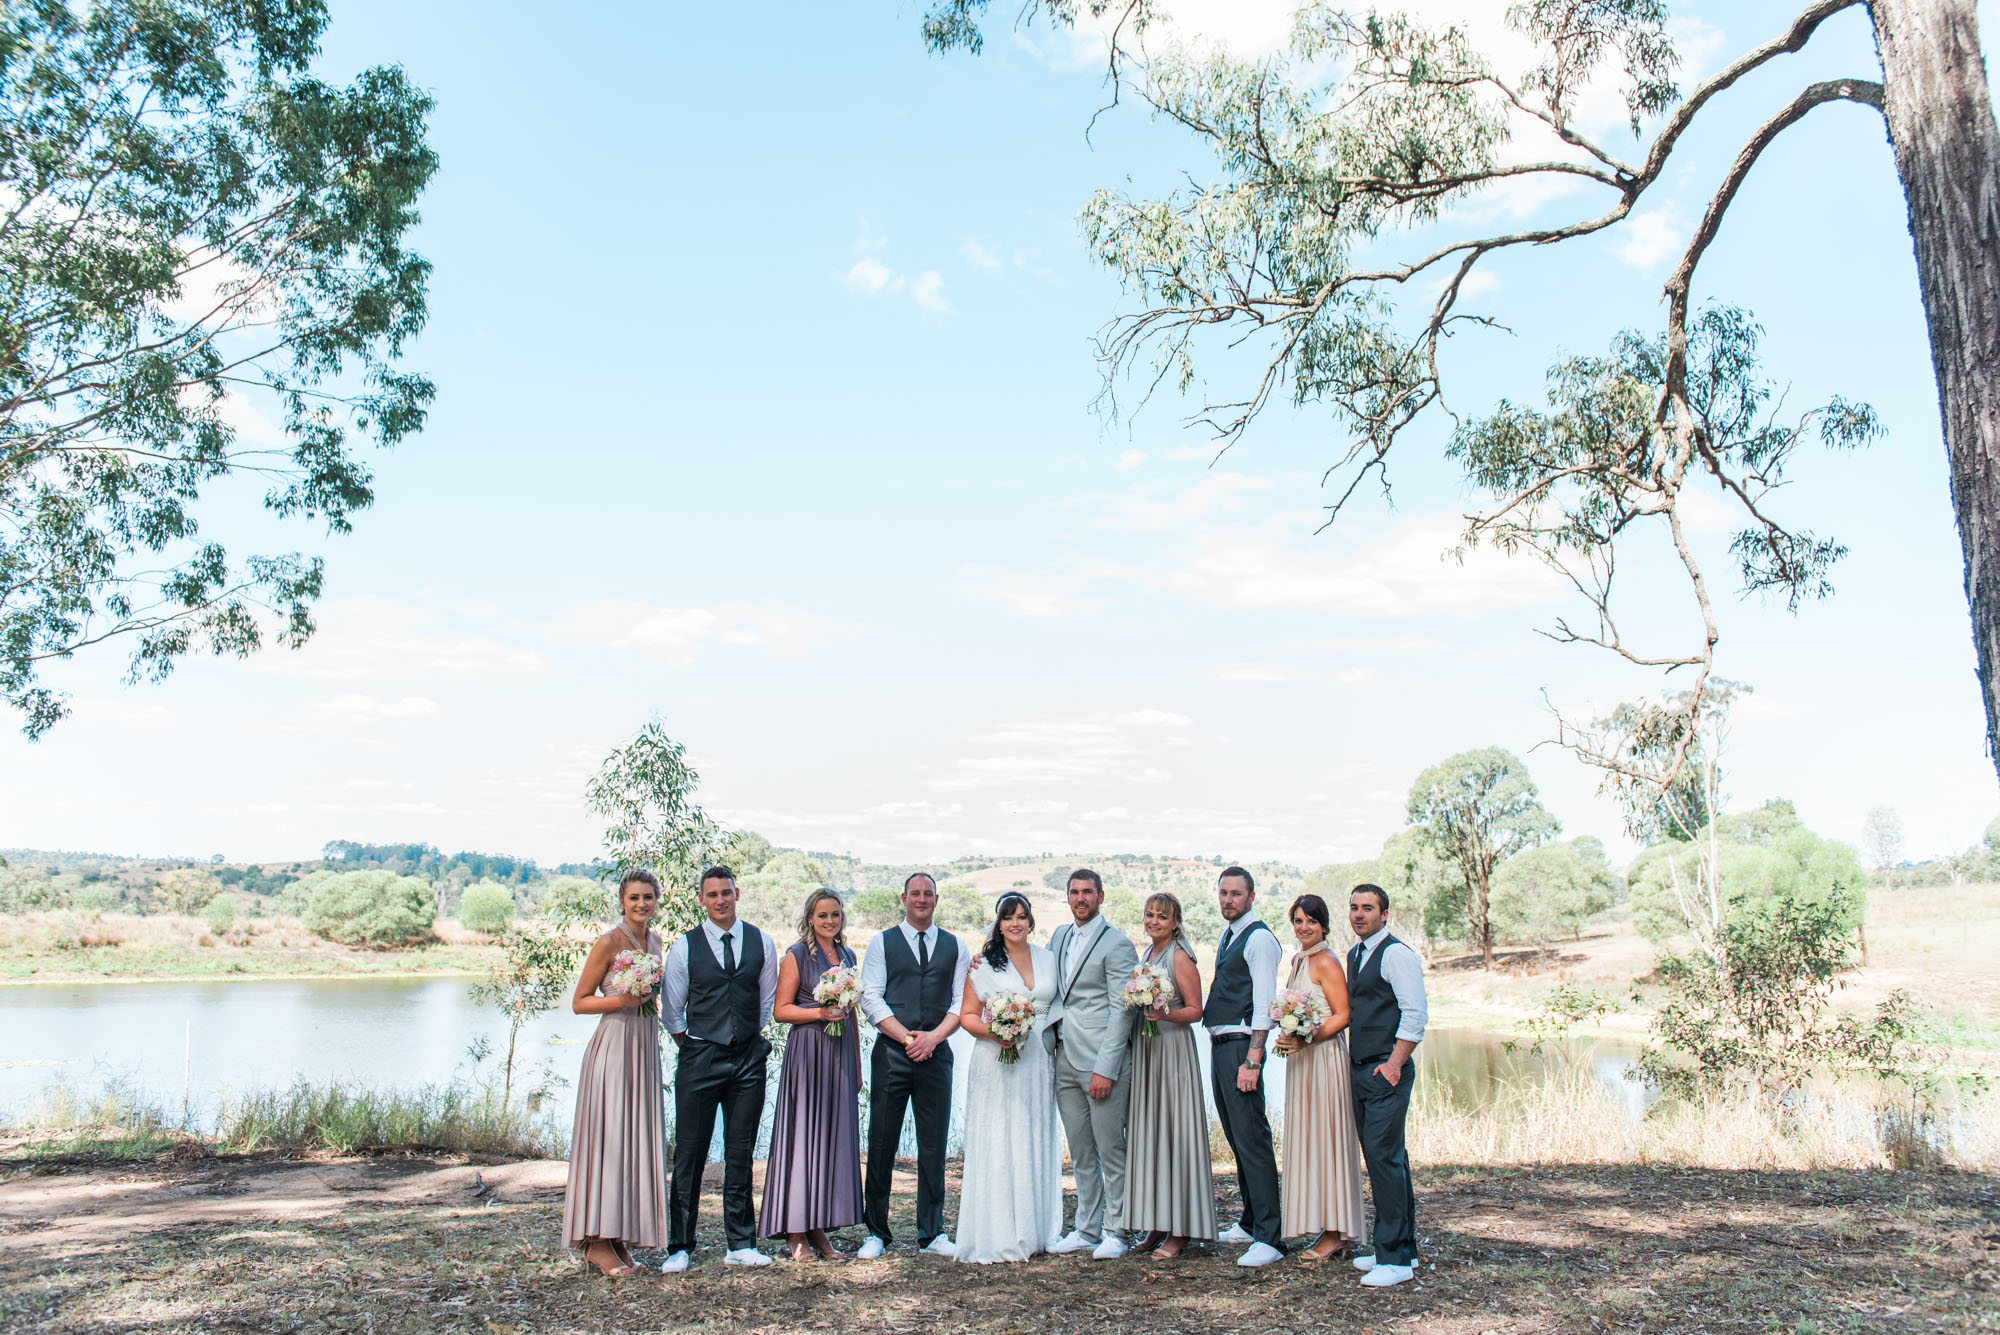 WEB-hannahmccawley-mindretreatwedding-danielandsarah-217